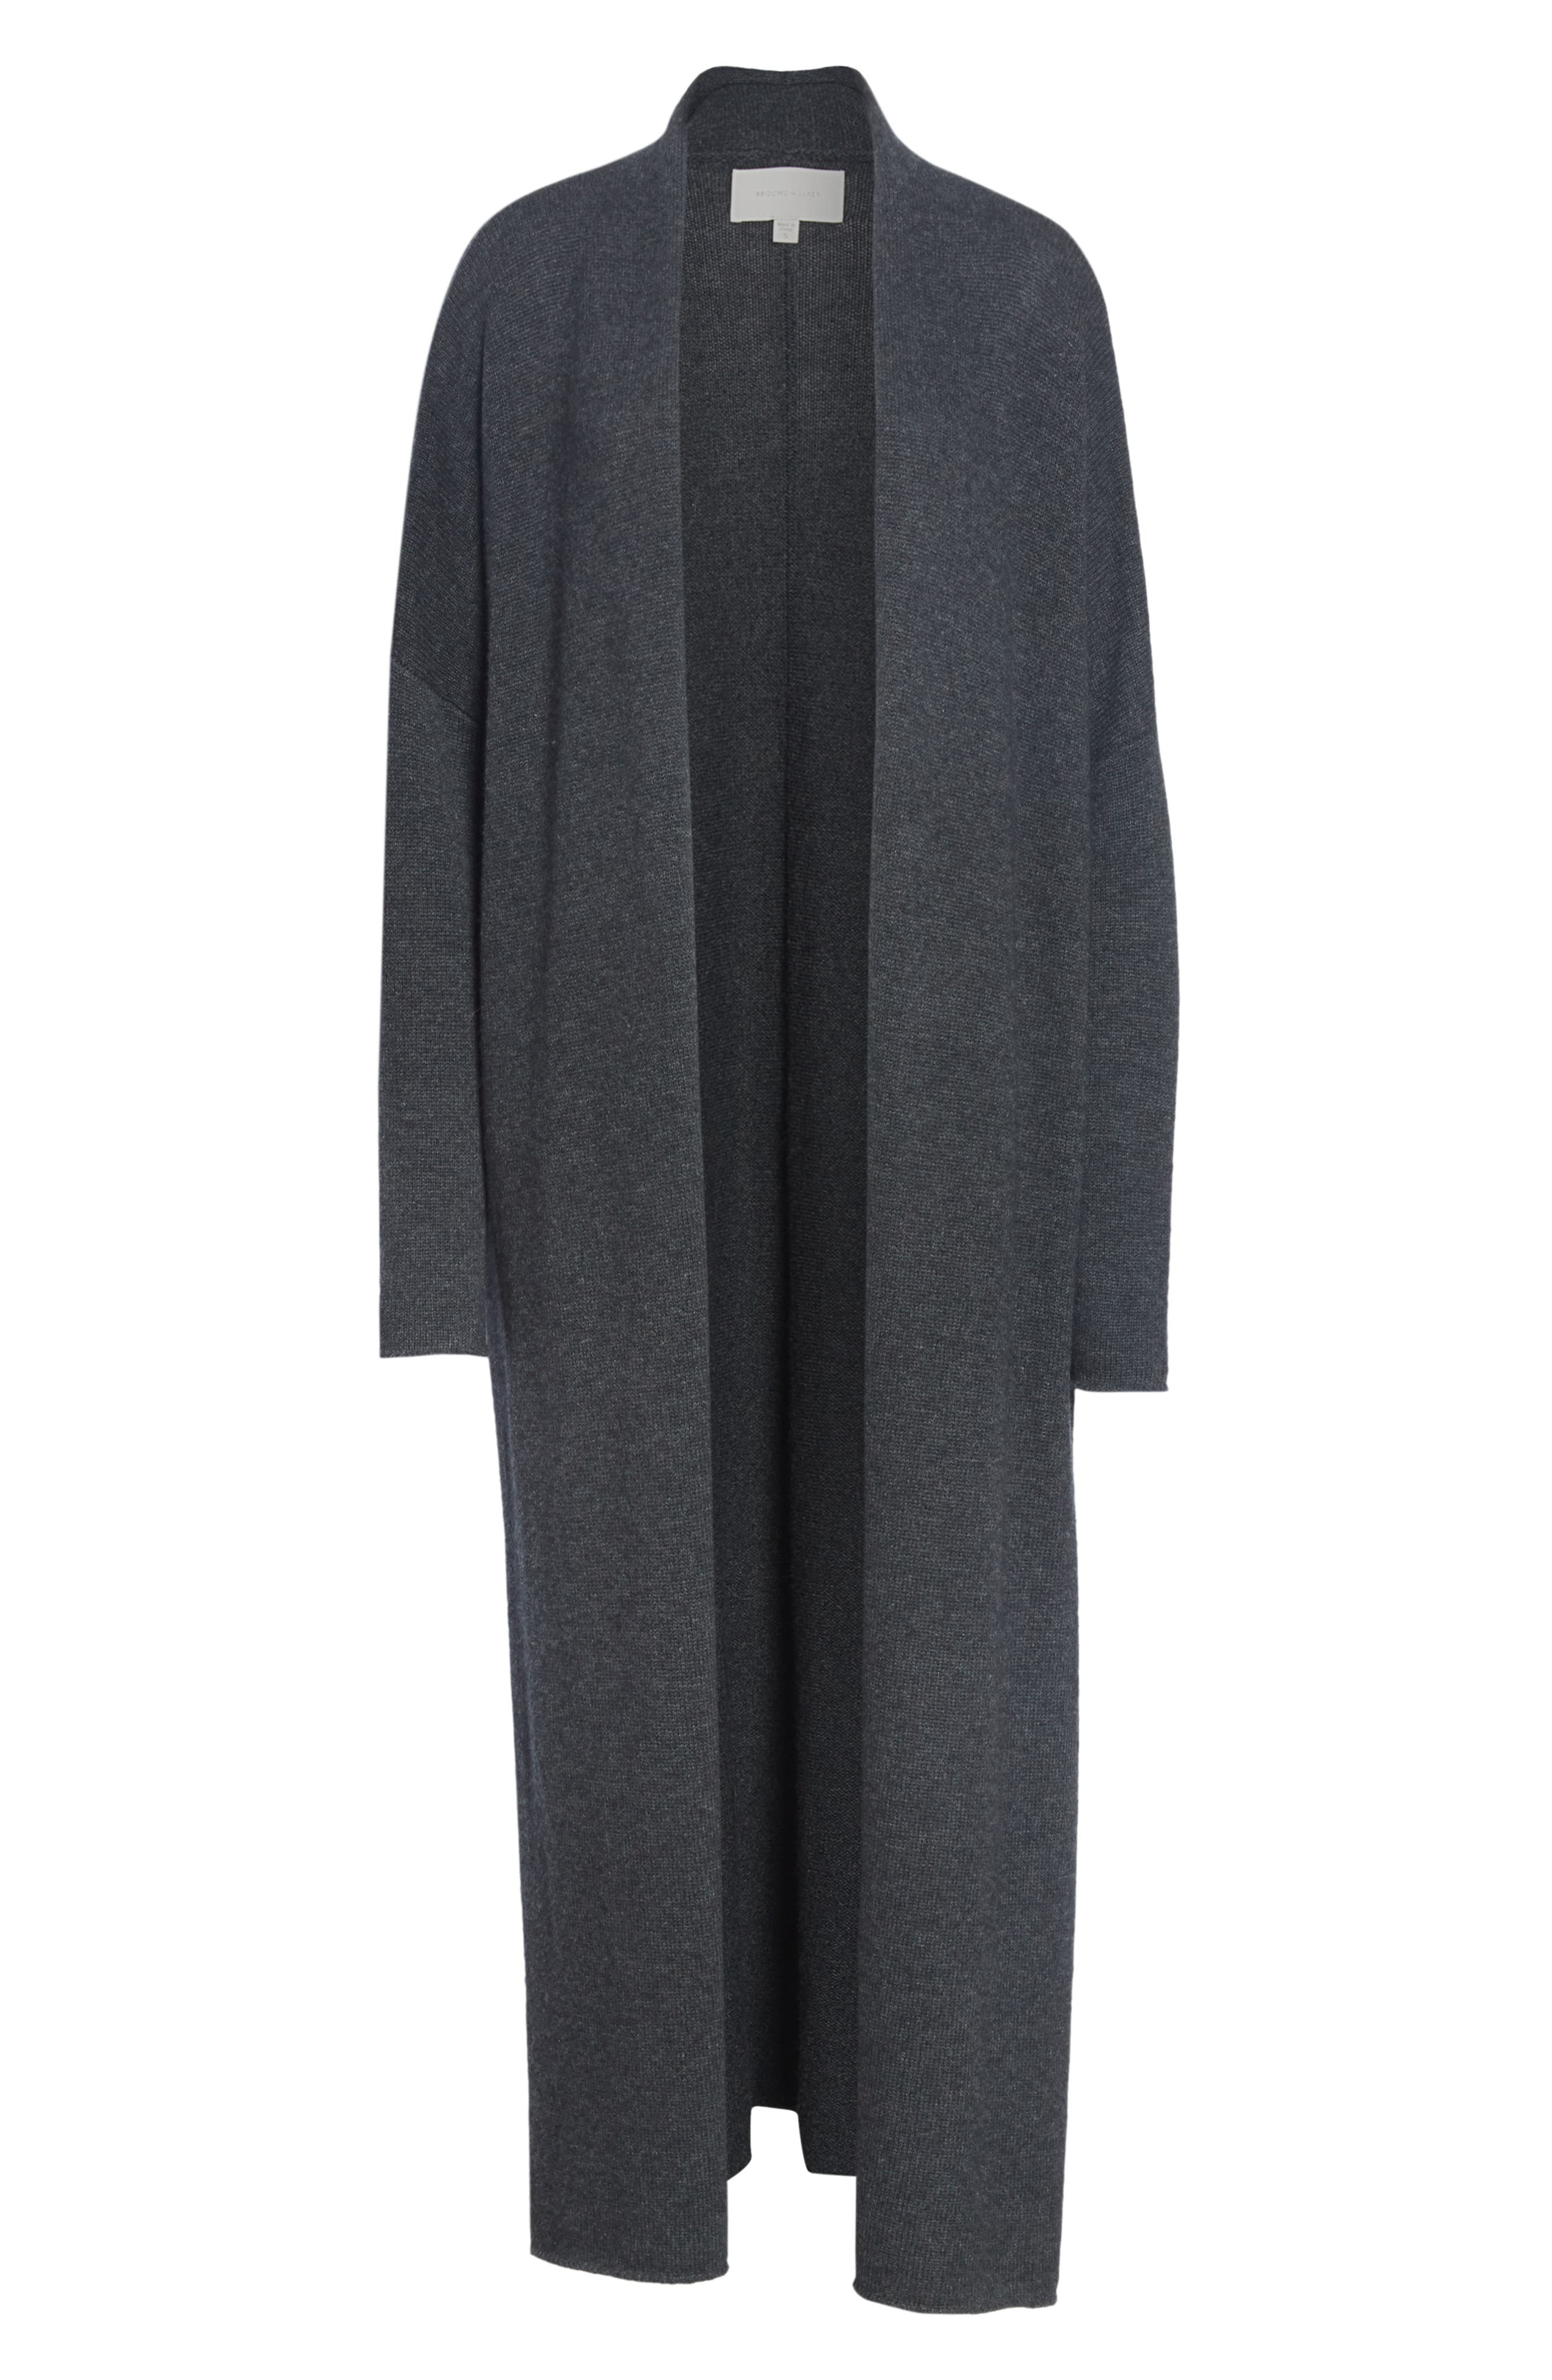 Orial Wool Cashmere Duster,                             Alternate thumbnail 6, color,                             CHARCOAL